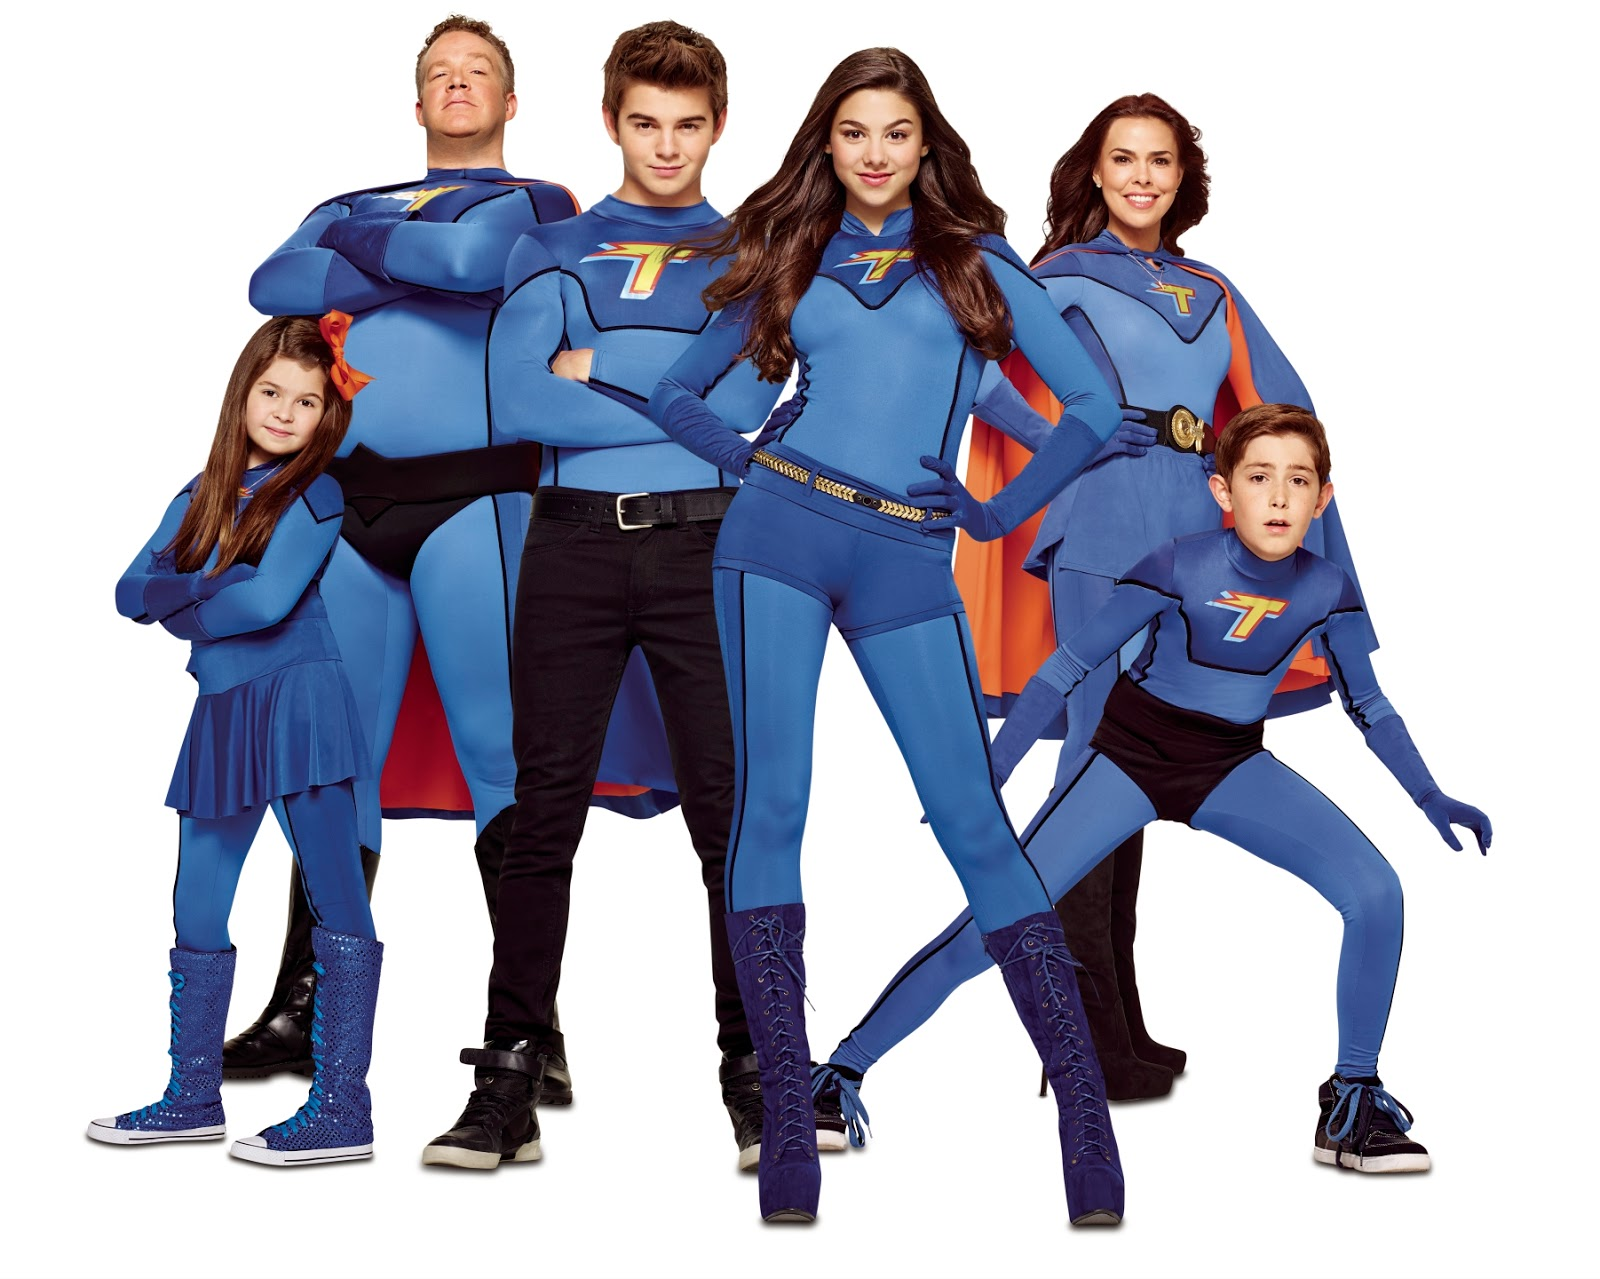 Nick De Thundermans